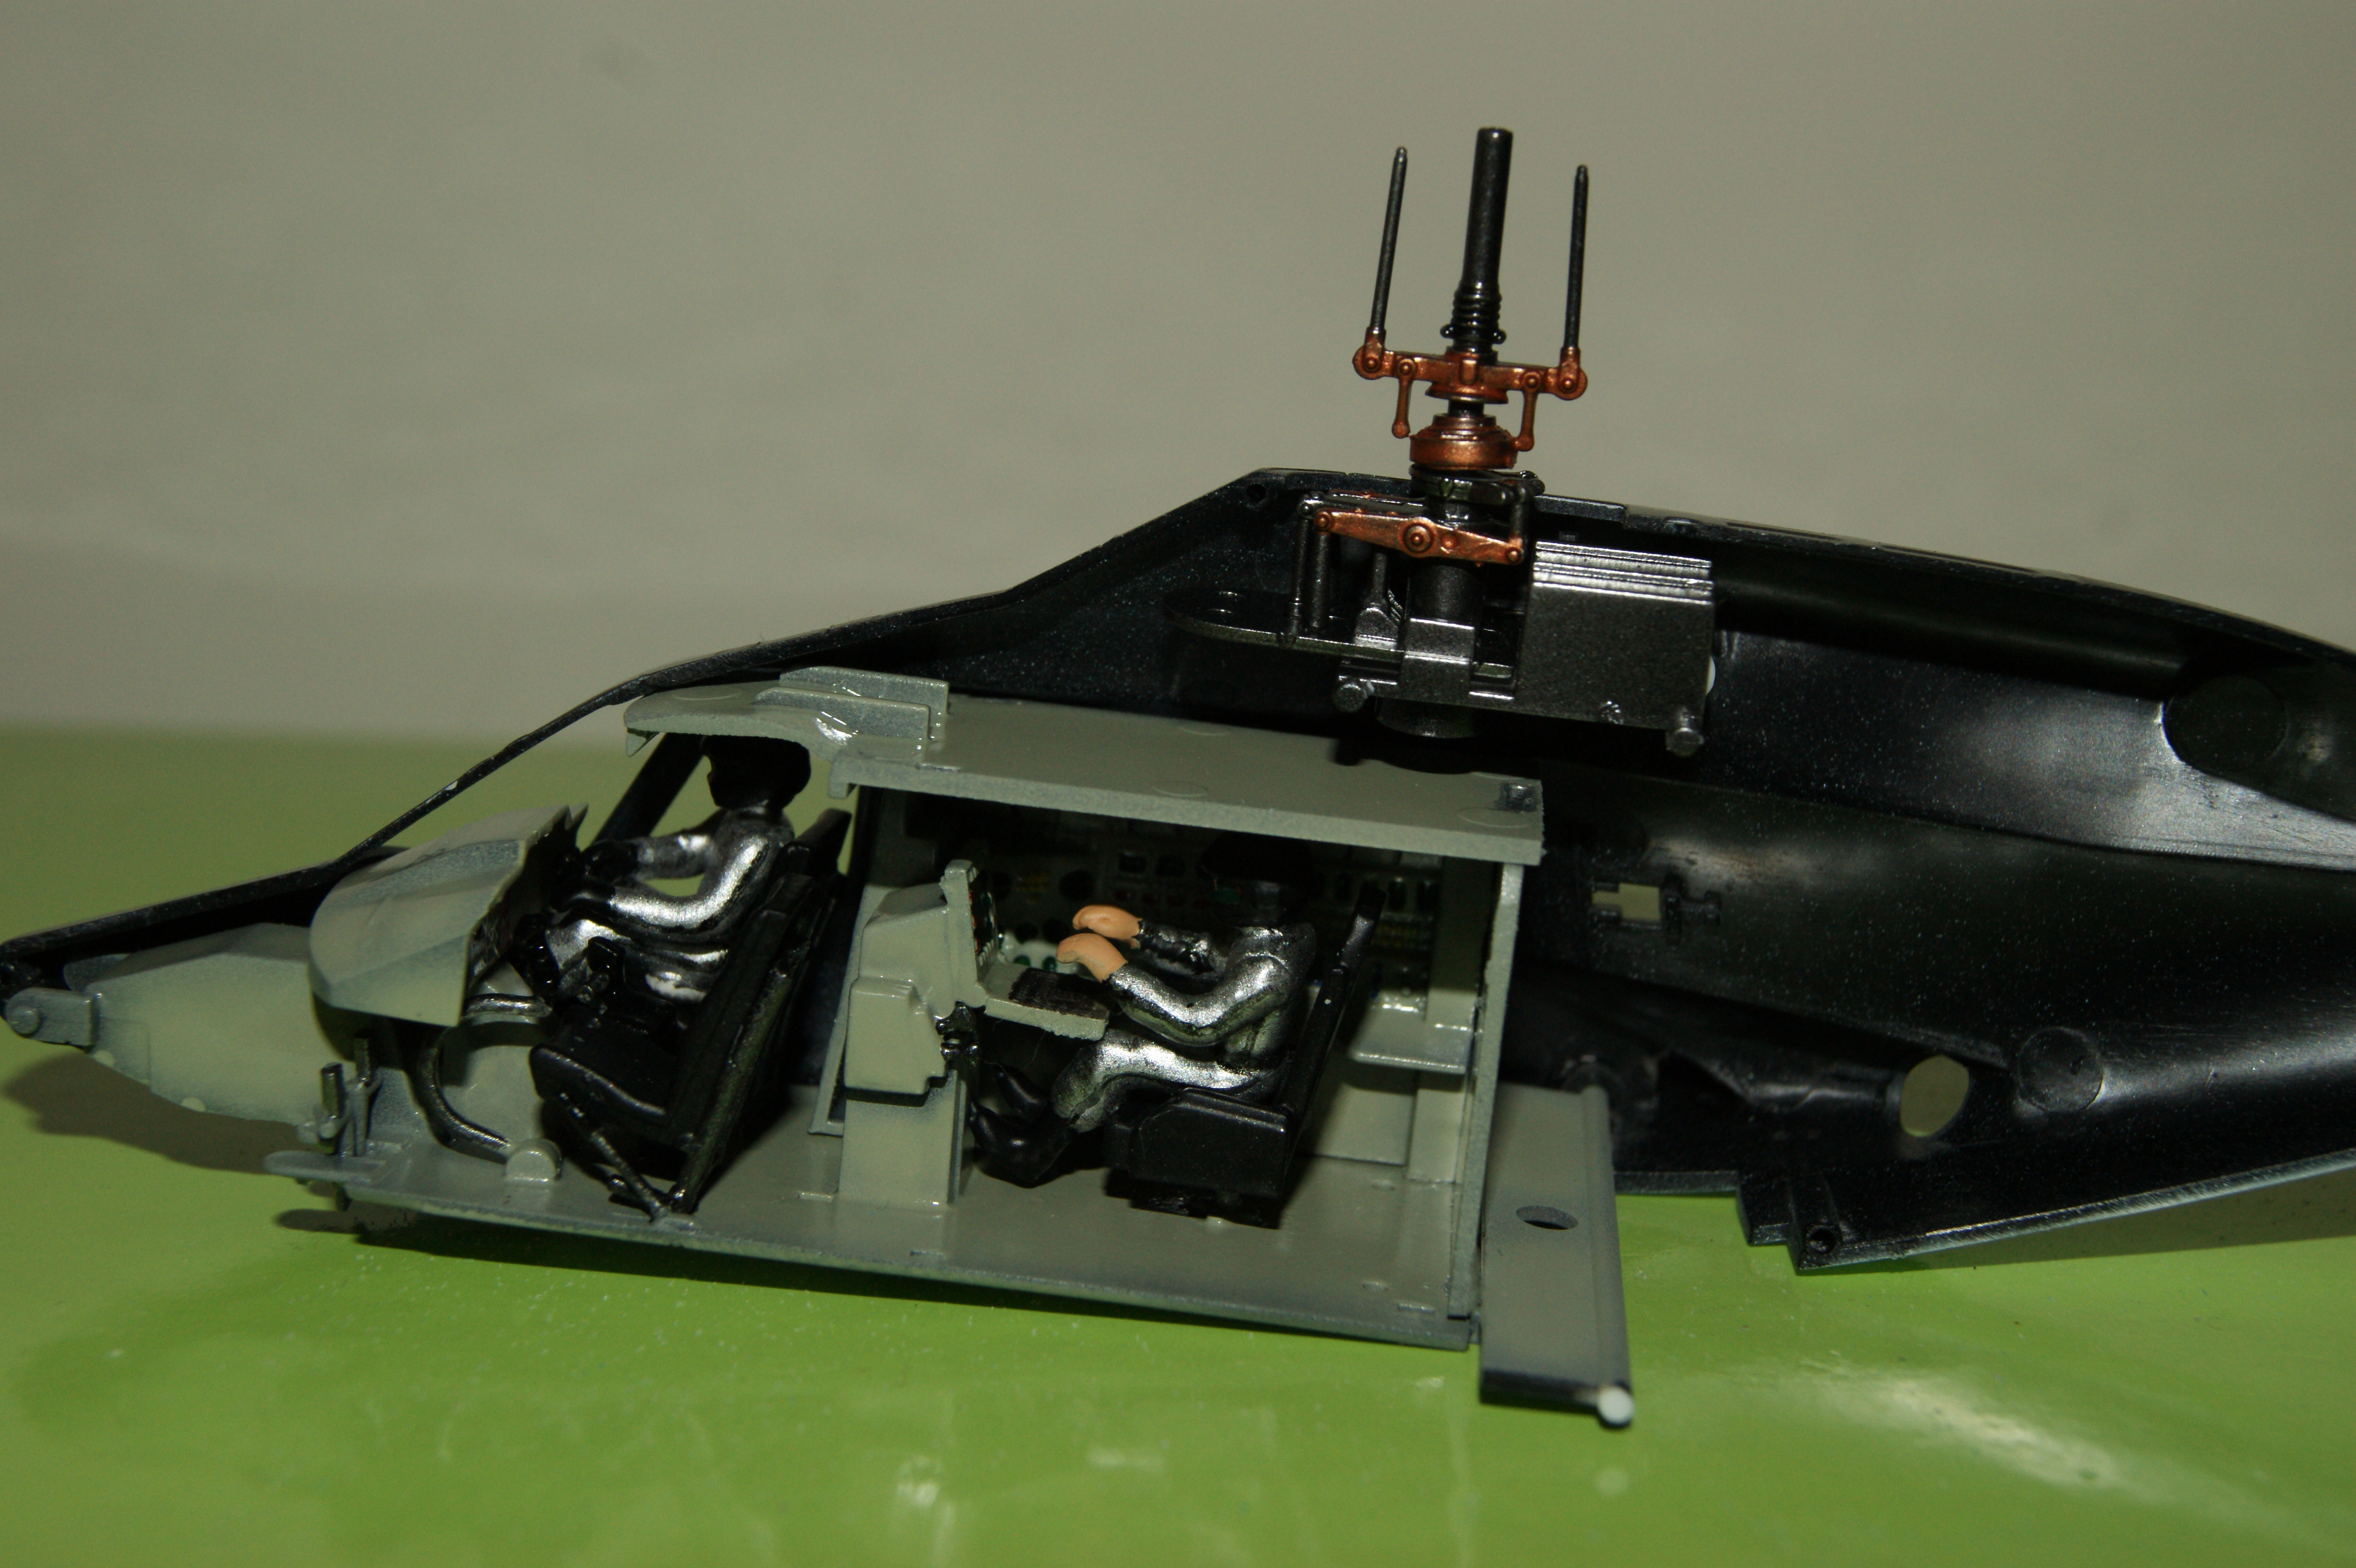 toy helicopters with Real Airwolf Helicopter Fonbeuojyldzrzm0y7xmc2iavjnhtqw 7c8ym7vdw6plo on Watch in addition Tower Pieces Wood Colors Game YINGQIER additionally Doll Jolina Ballerina 34cm ZAPF CREATION together with 1415 also Watch.